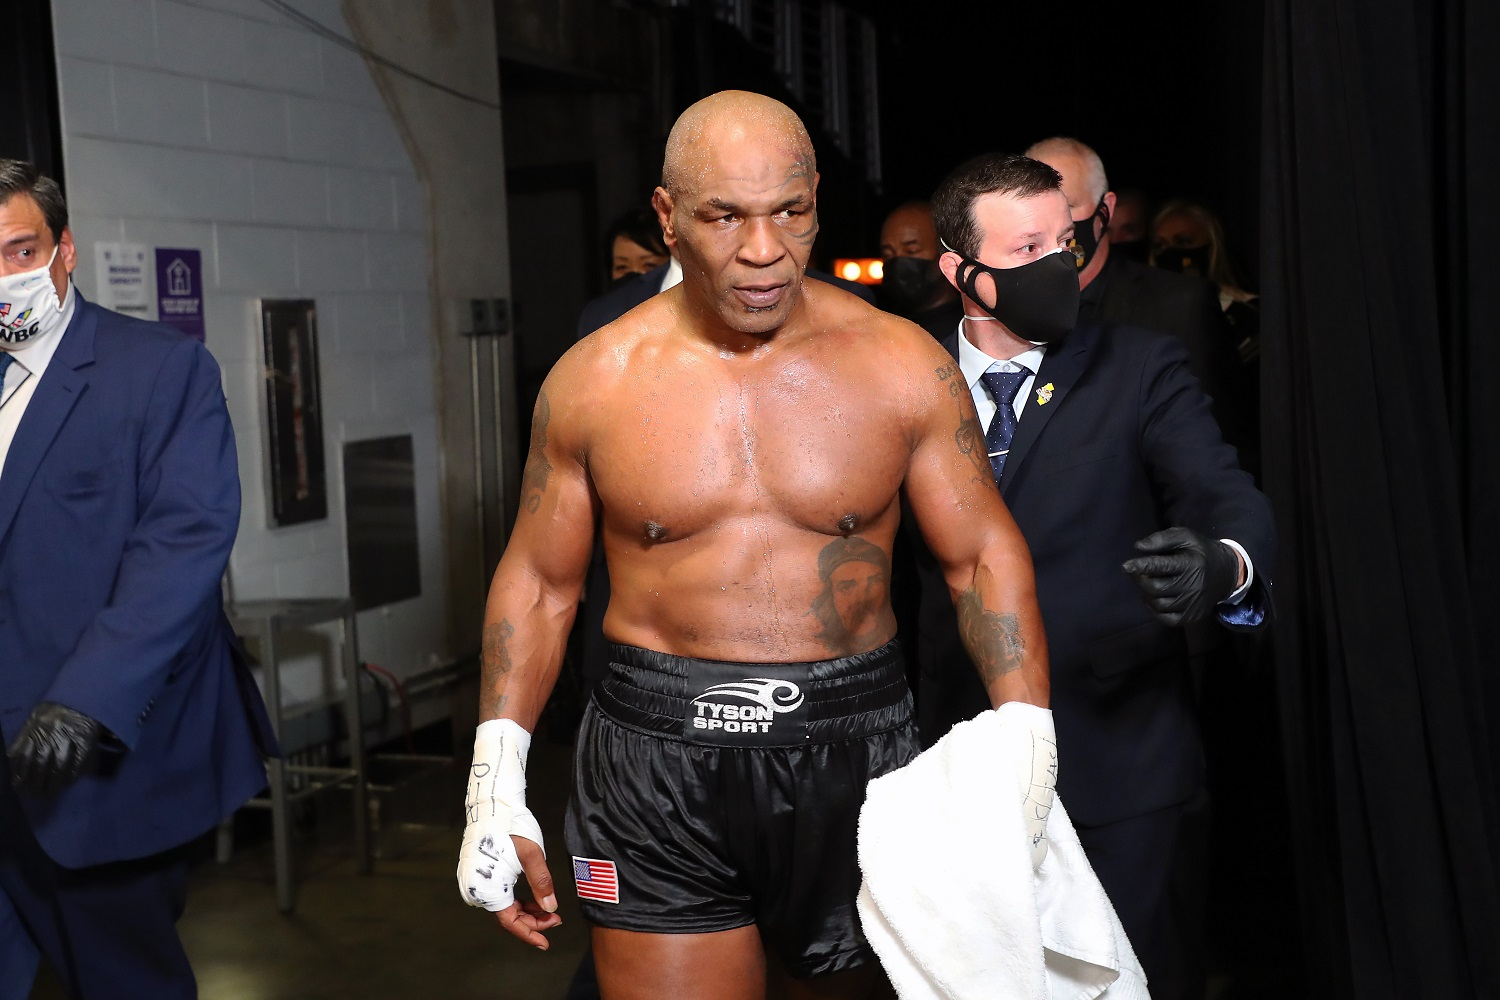 The Man Who Reportedly Attacked Mike Tyson After His Fight With Roy Jones Jr. Has Apparently Caused Problems Before